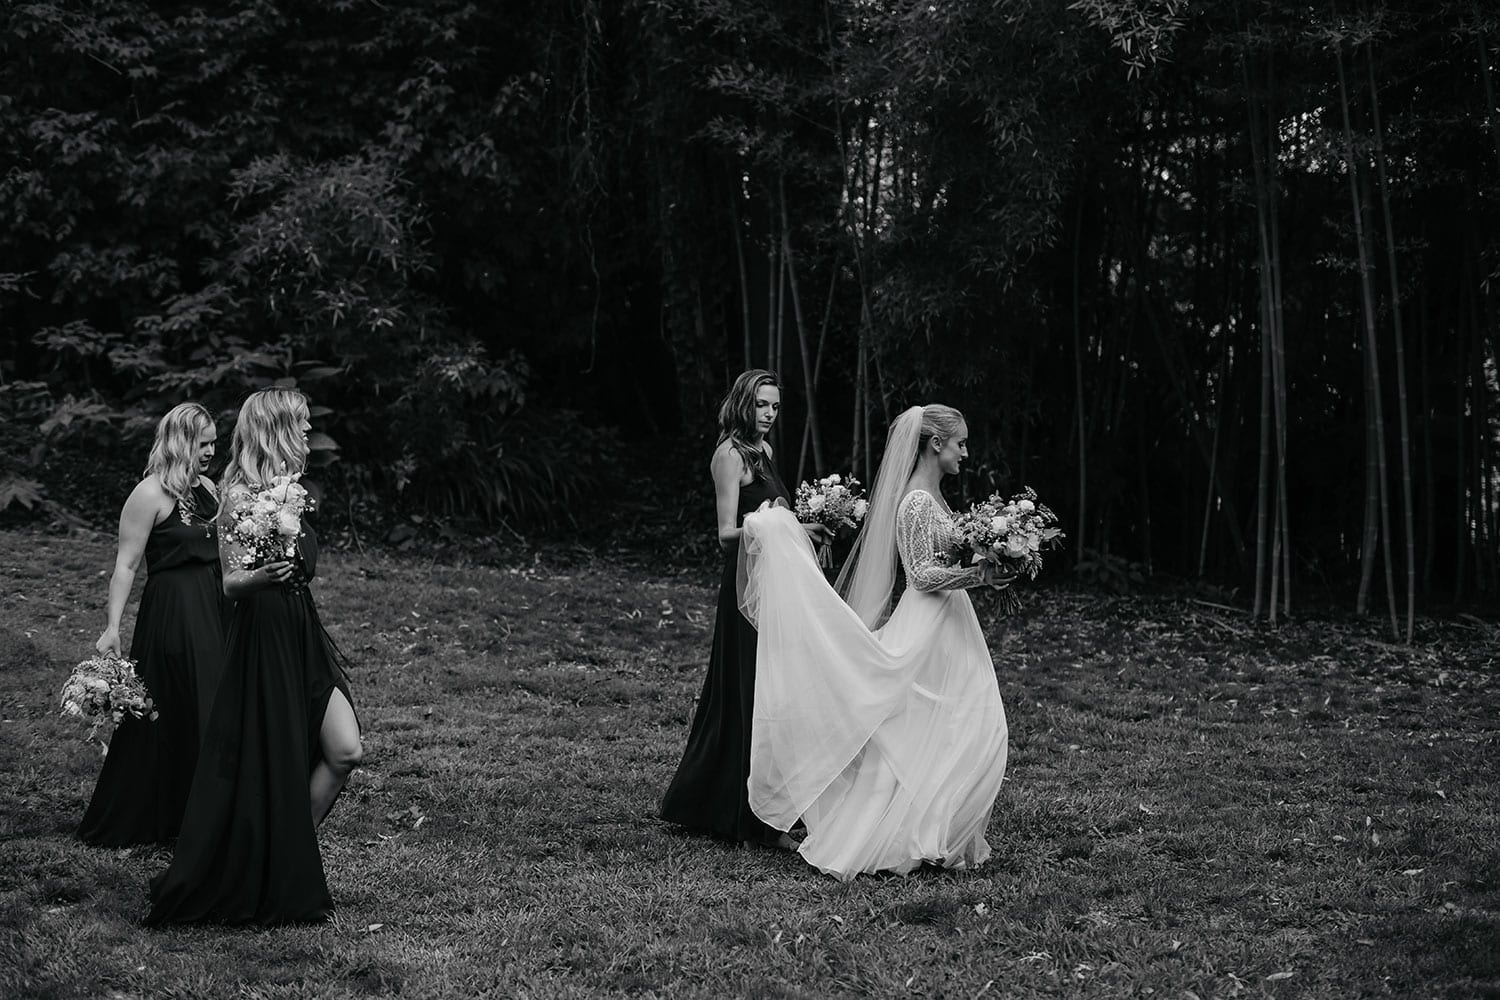 Vinka Design Features Real Weddings - Bride in custom made gown with bold lace bodice with fitted, long, beaded lace sleeves and floating skirt. With bridesmaids walking outdoors - black and white